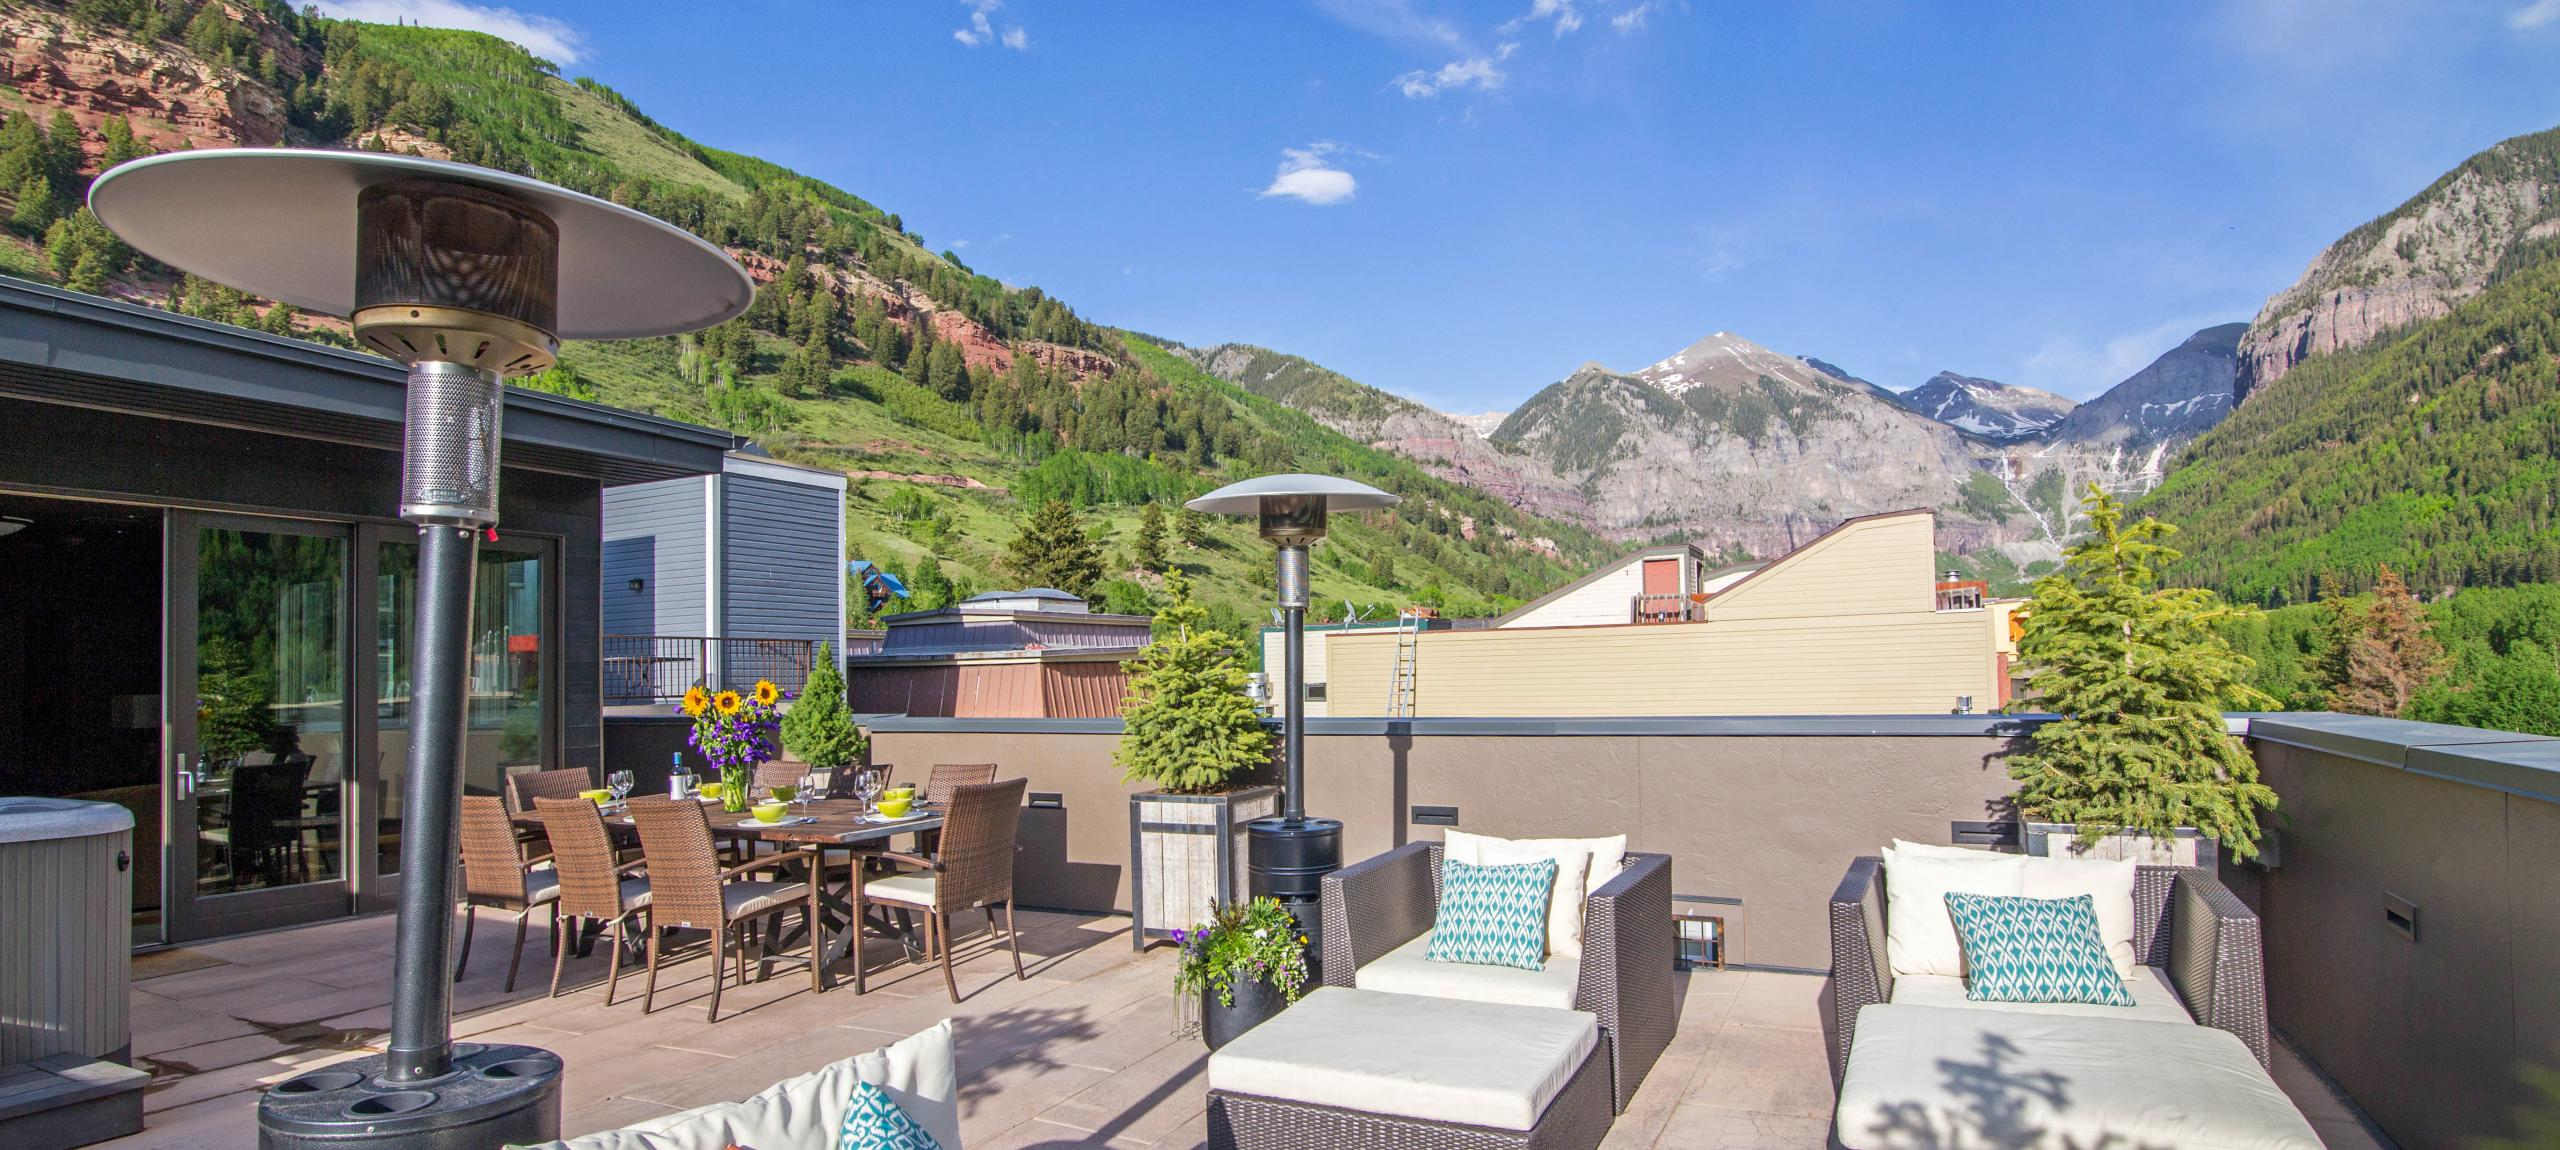 Telluride-rentals-trulux-penthouse-deck-seating